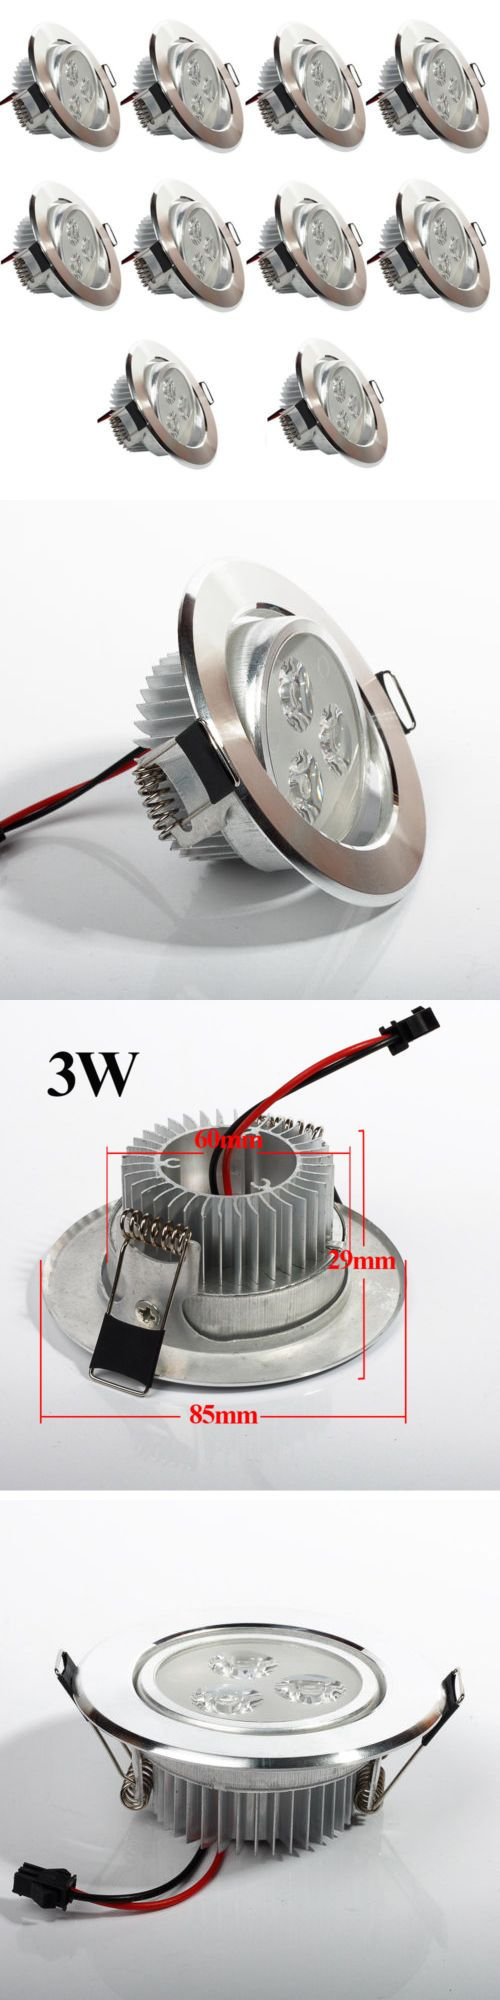 Lamps And Lighting: 10Pcs 3W Led Recessed Ceiling Light Downlight Lamp Led Recessed Lighting Fixture BUY IT NOW ONLY: $44.88